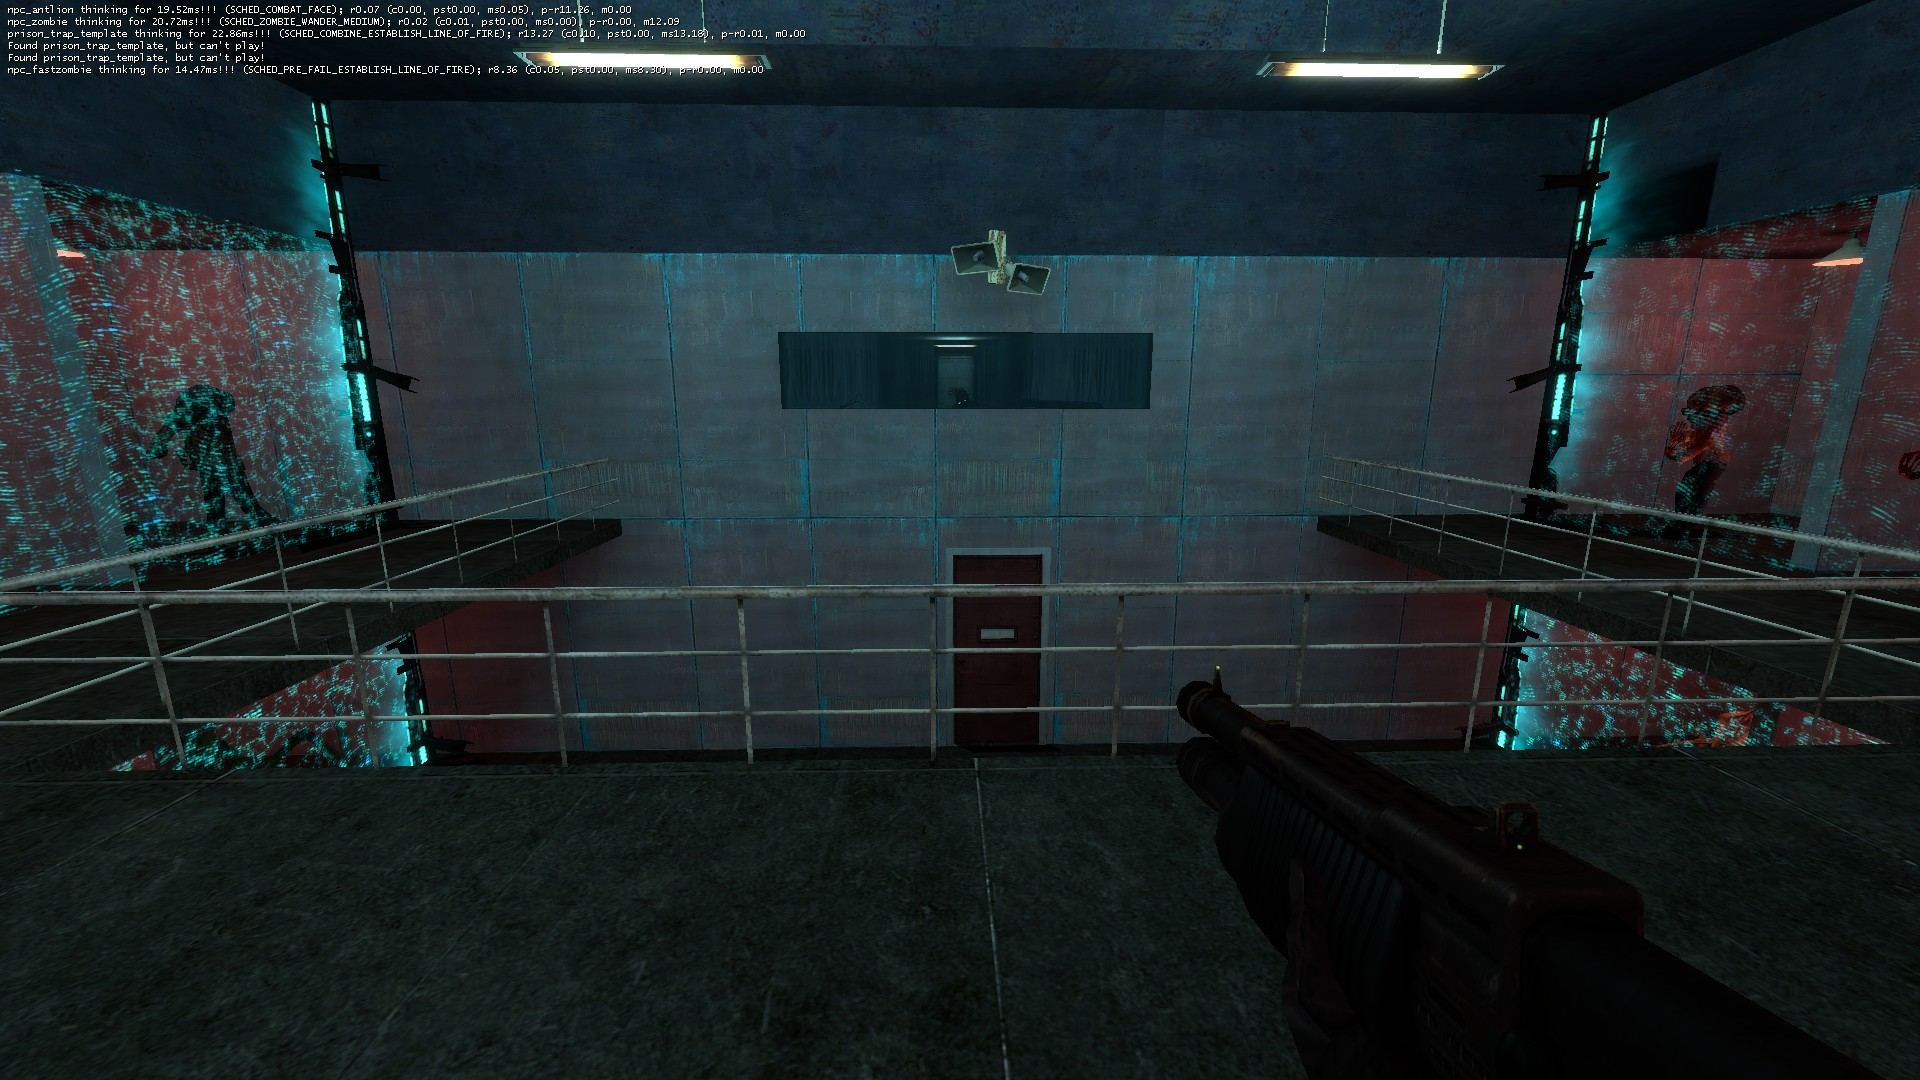 Combine Soldier locking the player in the prison